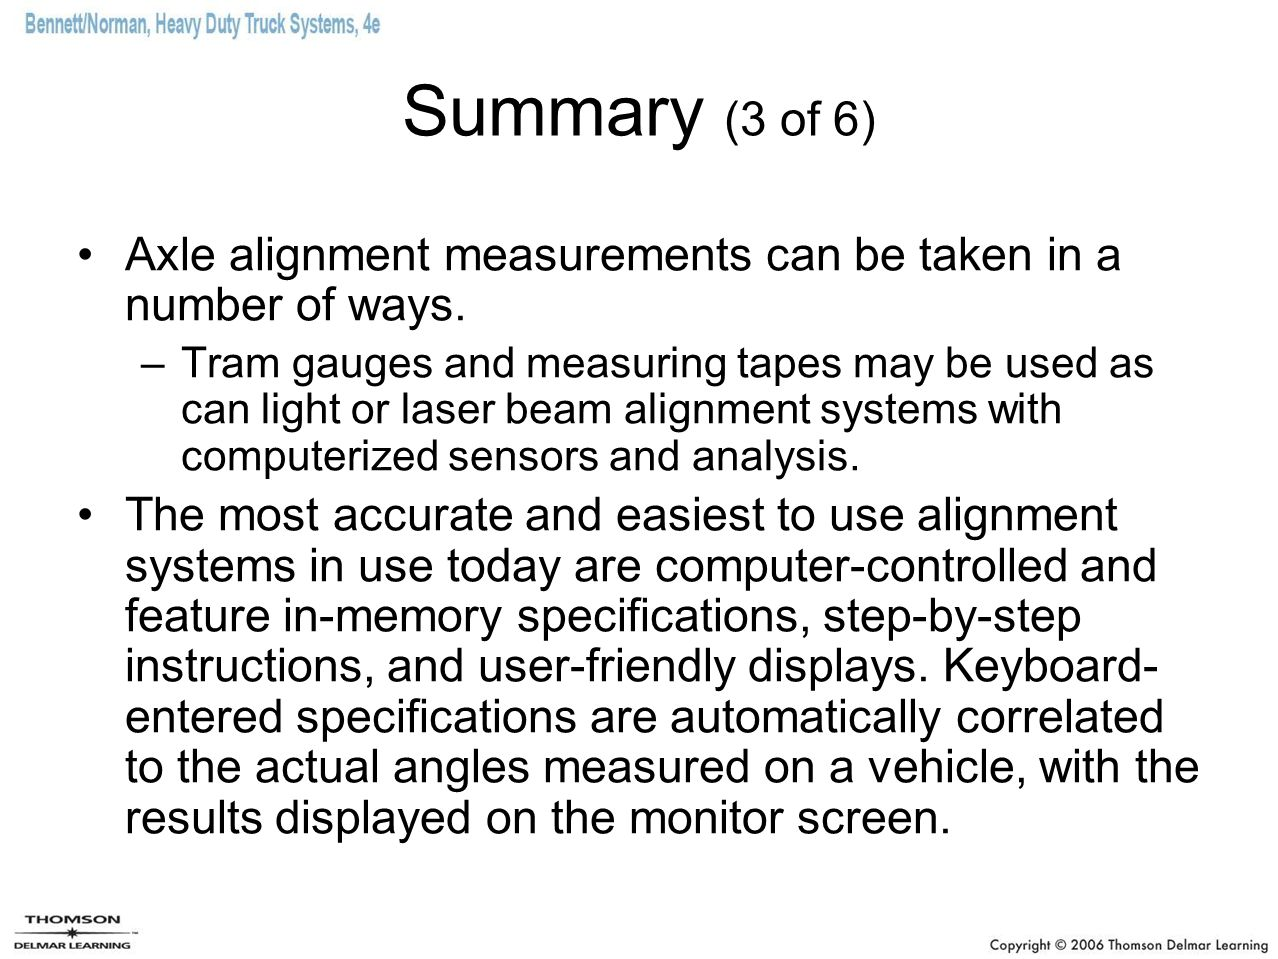 Summary (3 of 6) Axle alignment measurements can be taken in a number of ways.